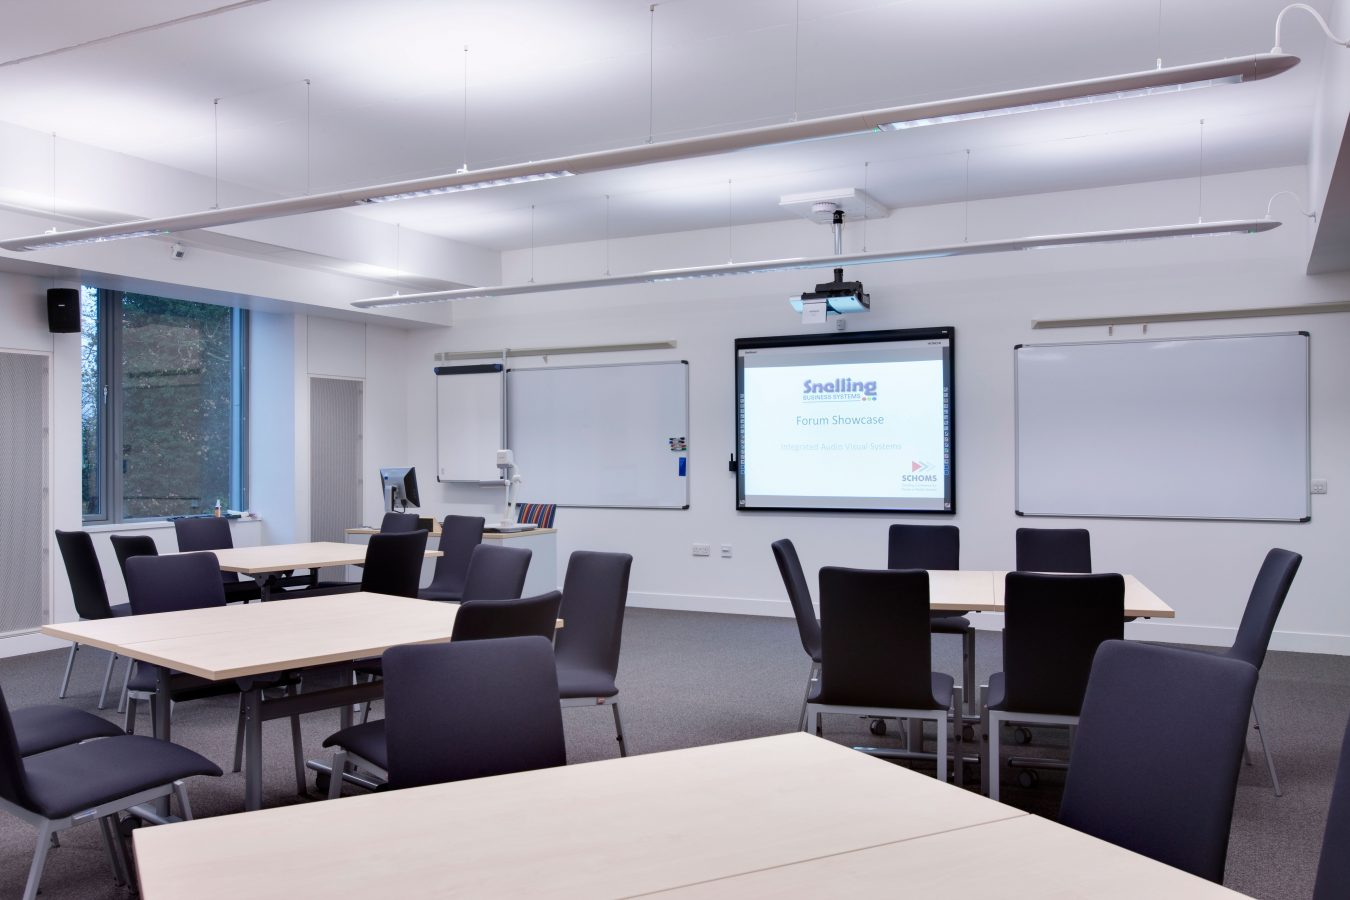 UEA | Snelling Business Systems 12